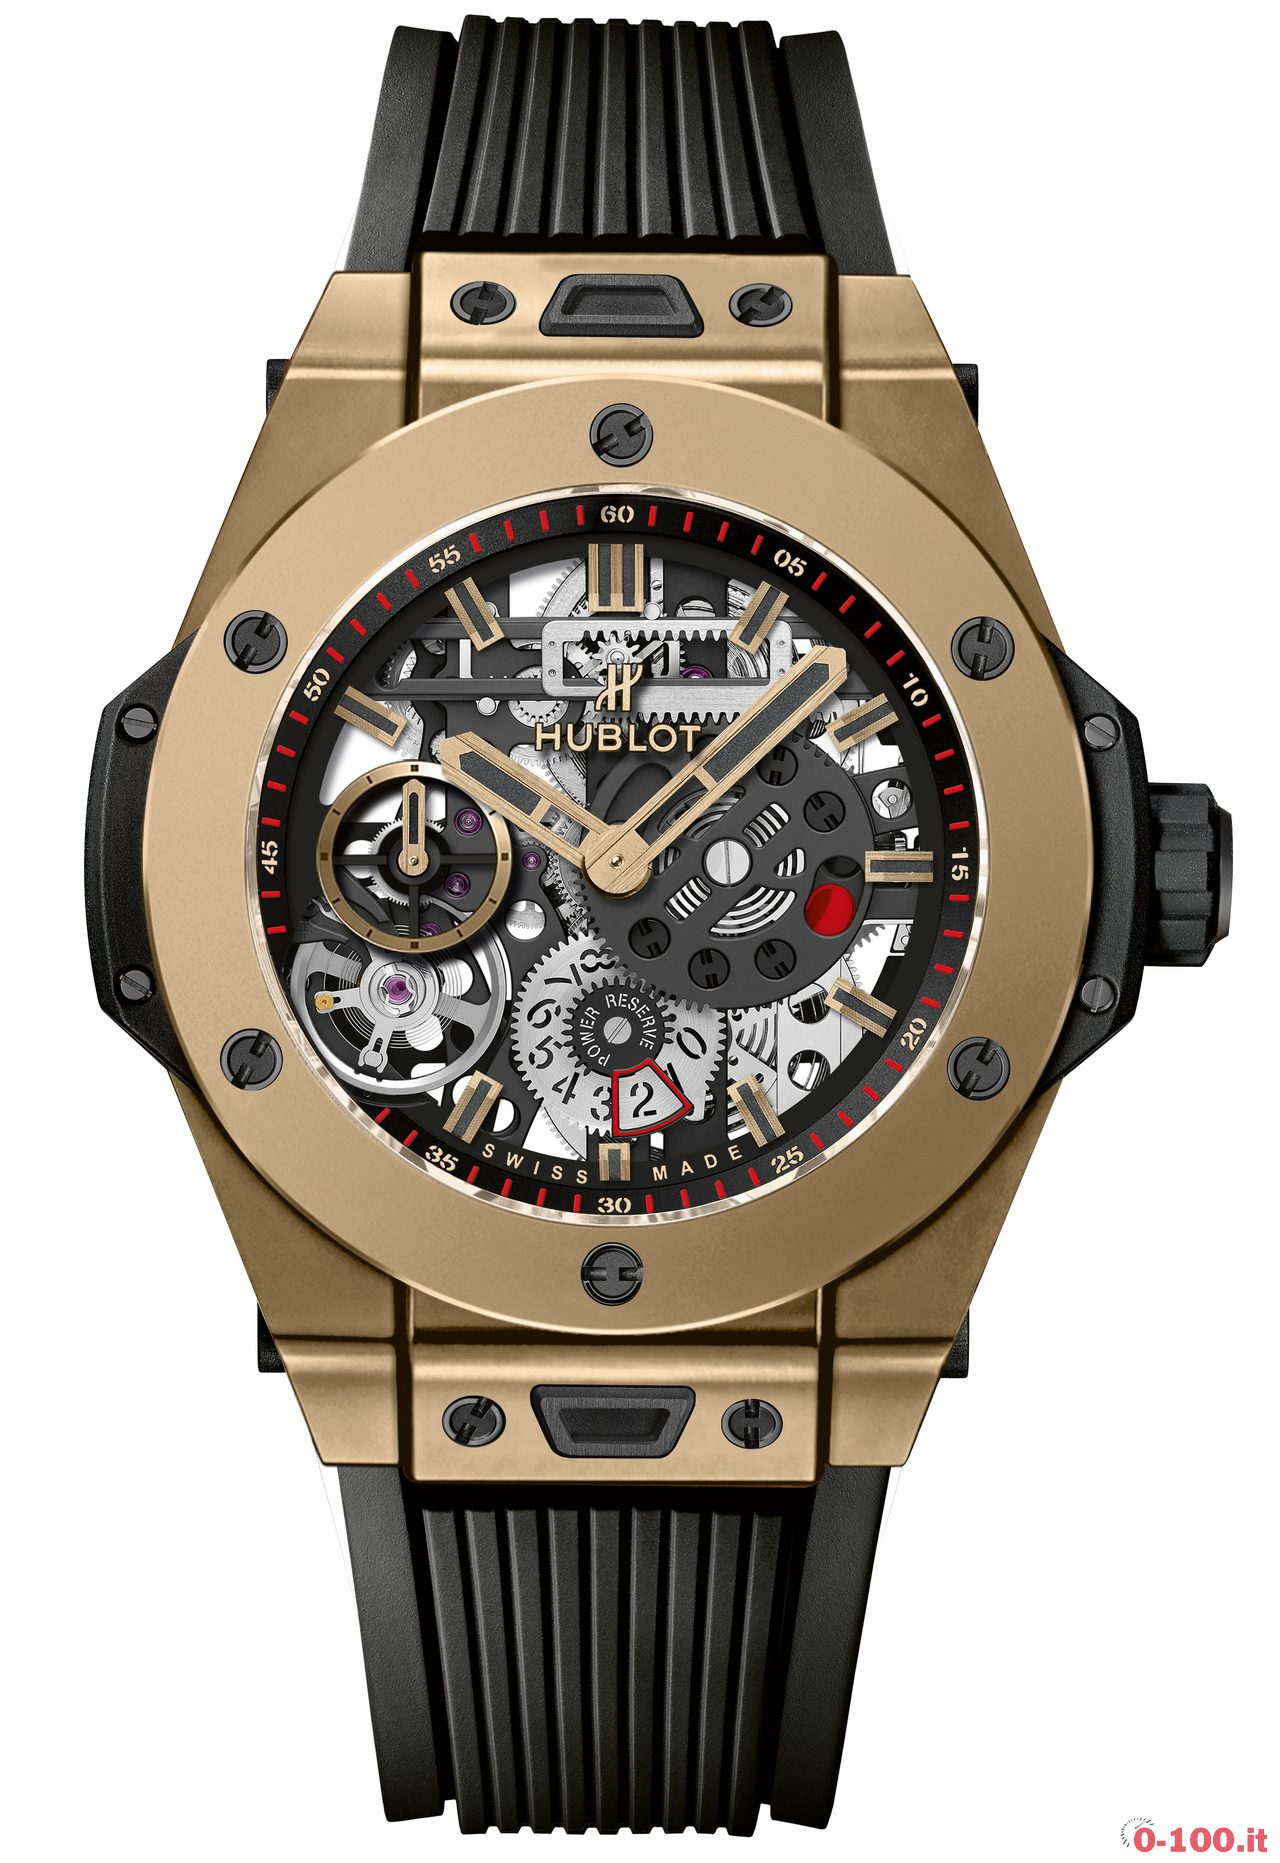 preview-geneve-2017-hublot-big-bang-meca-10-magic-gold-limited-edition-ref-414-mx-1138-rx-prezzo-price_0-1001